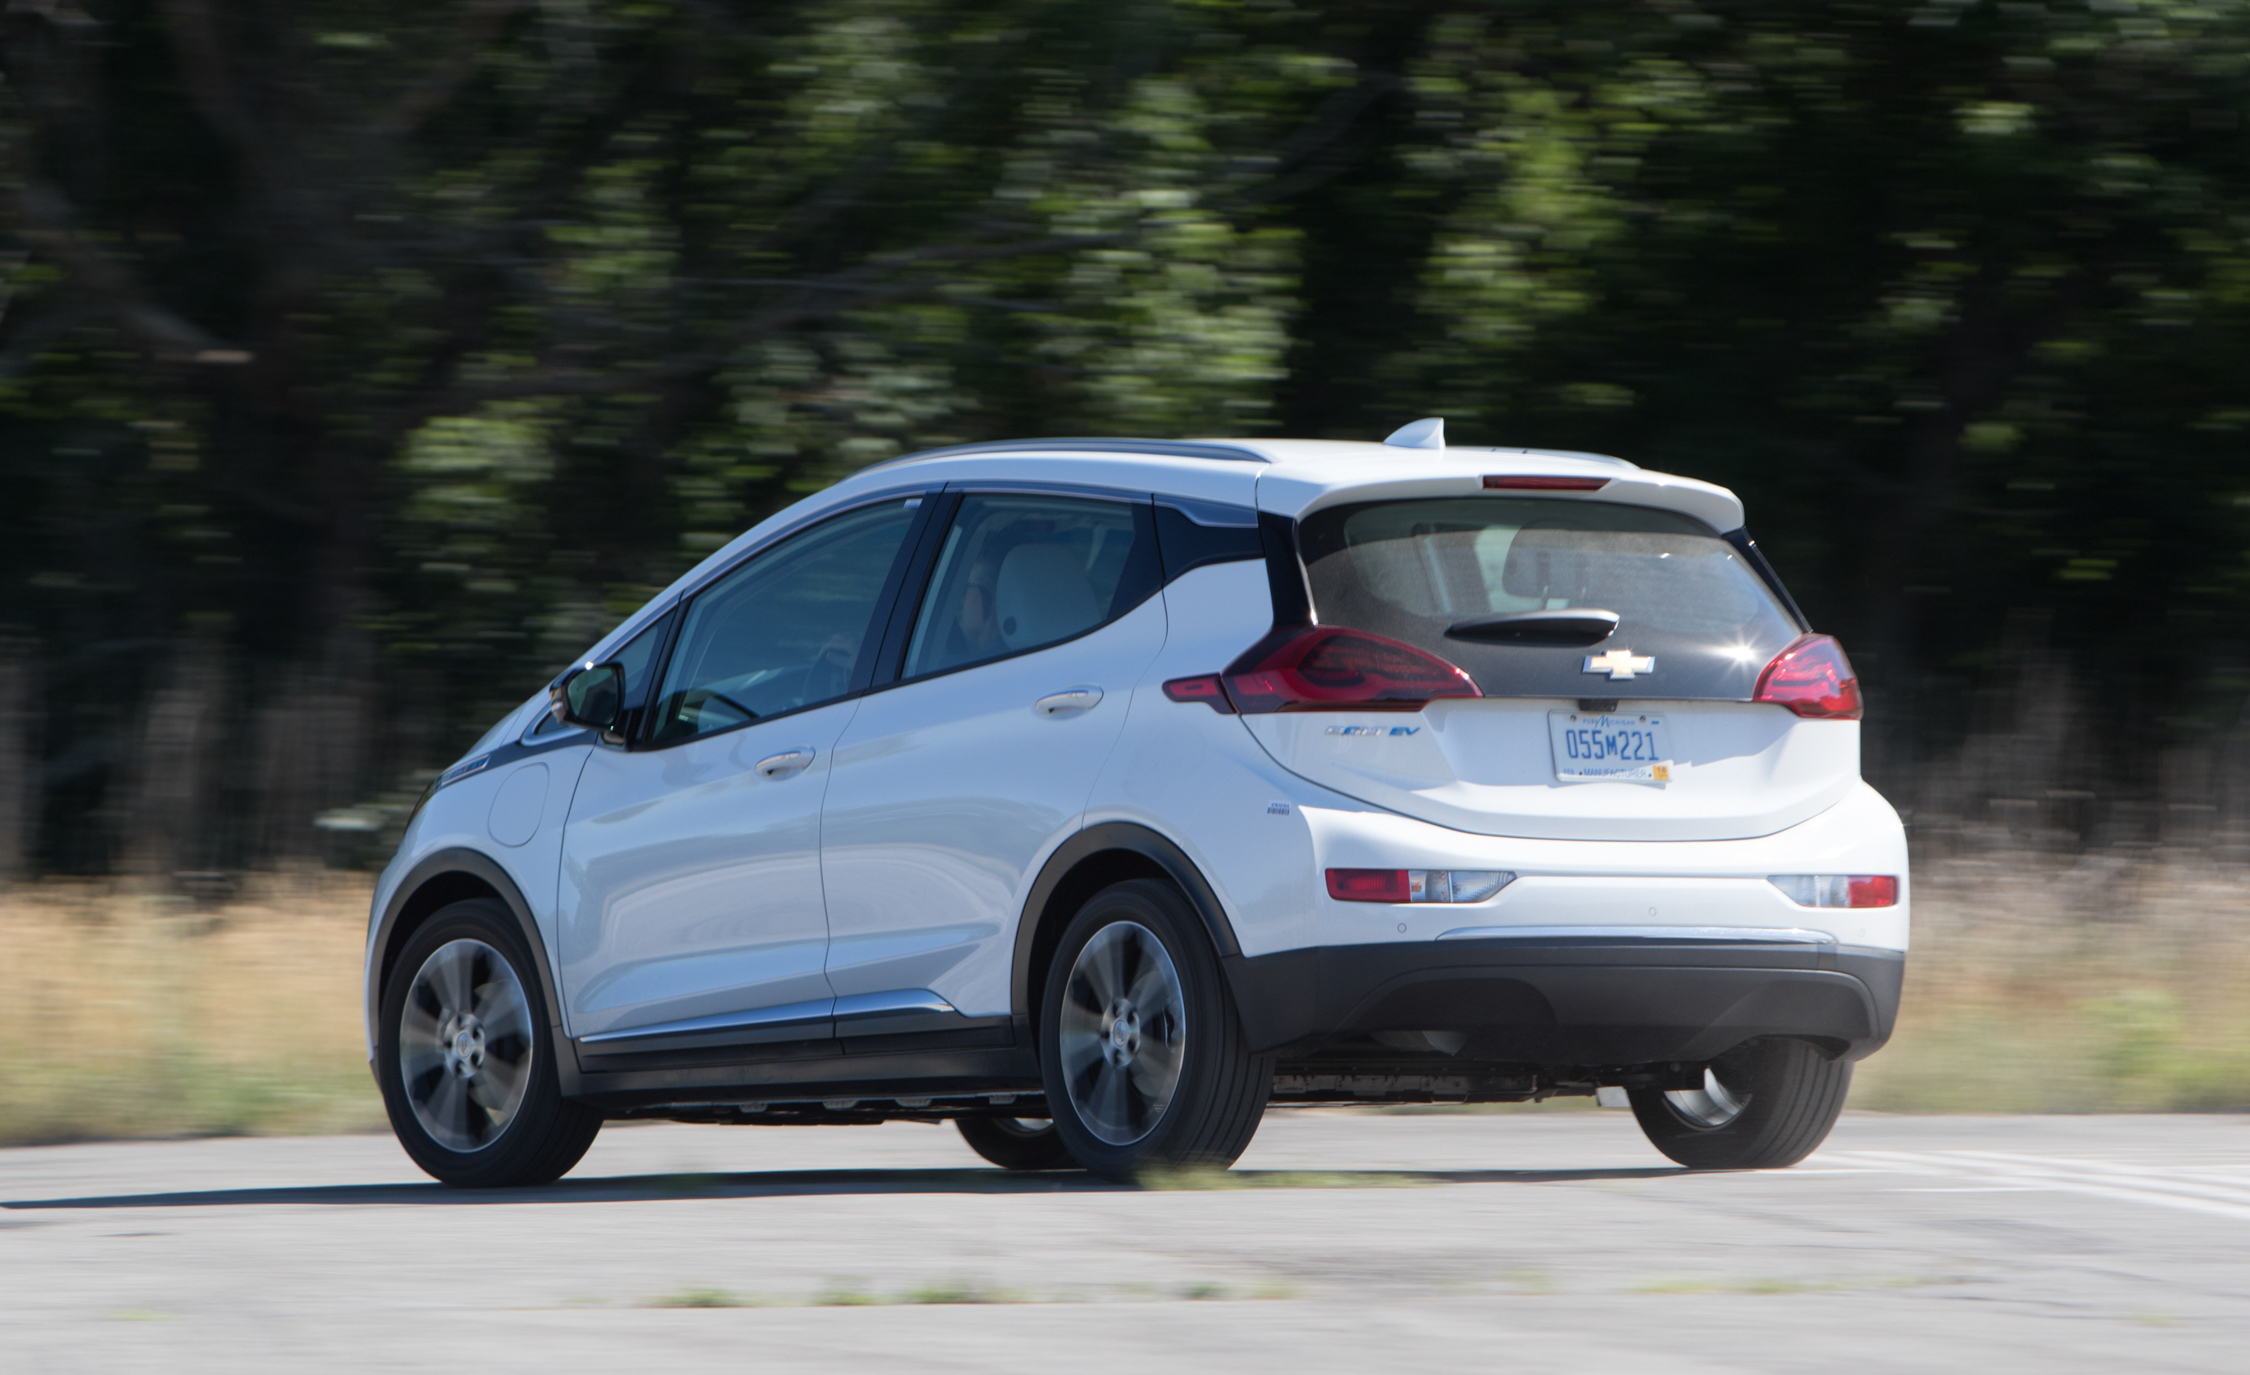 2017 Chevrolet Bolt Ev Test Drive Rear Side (Photo 12 of 12)